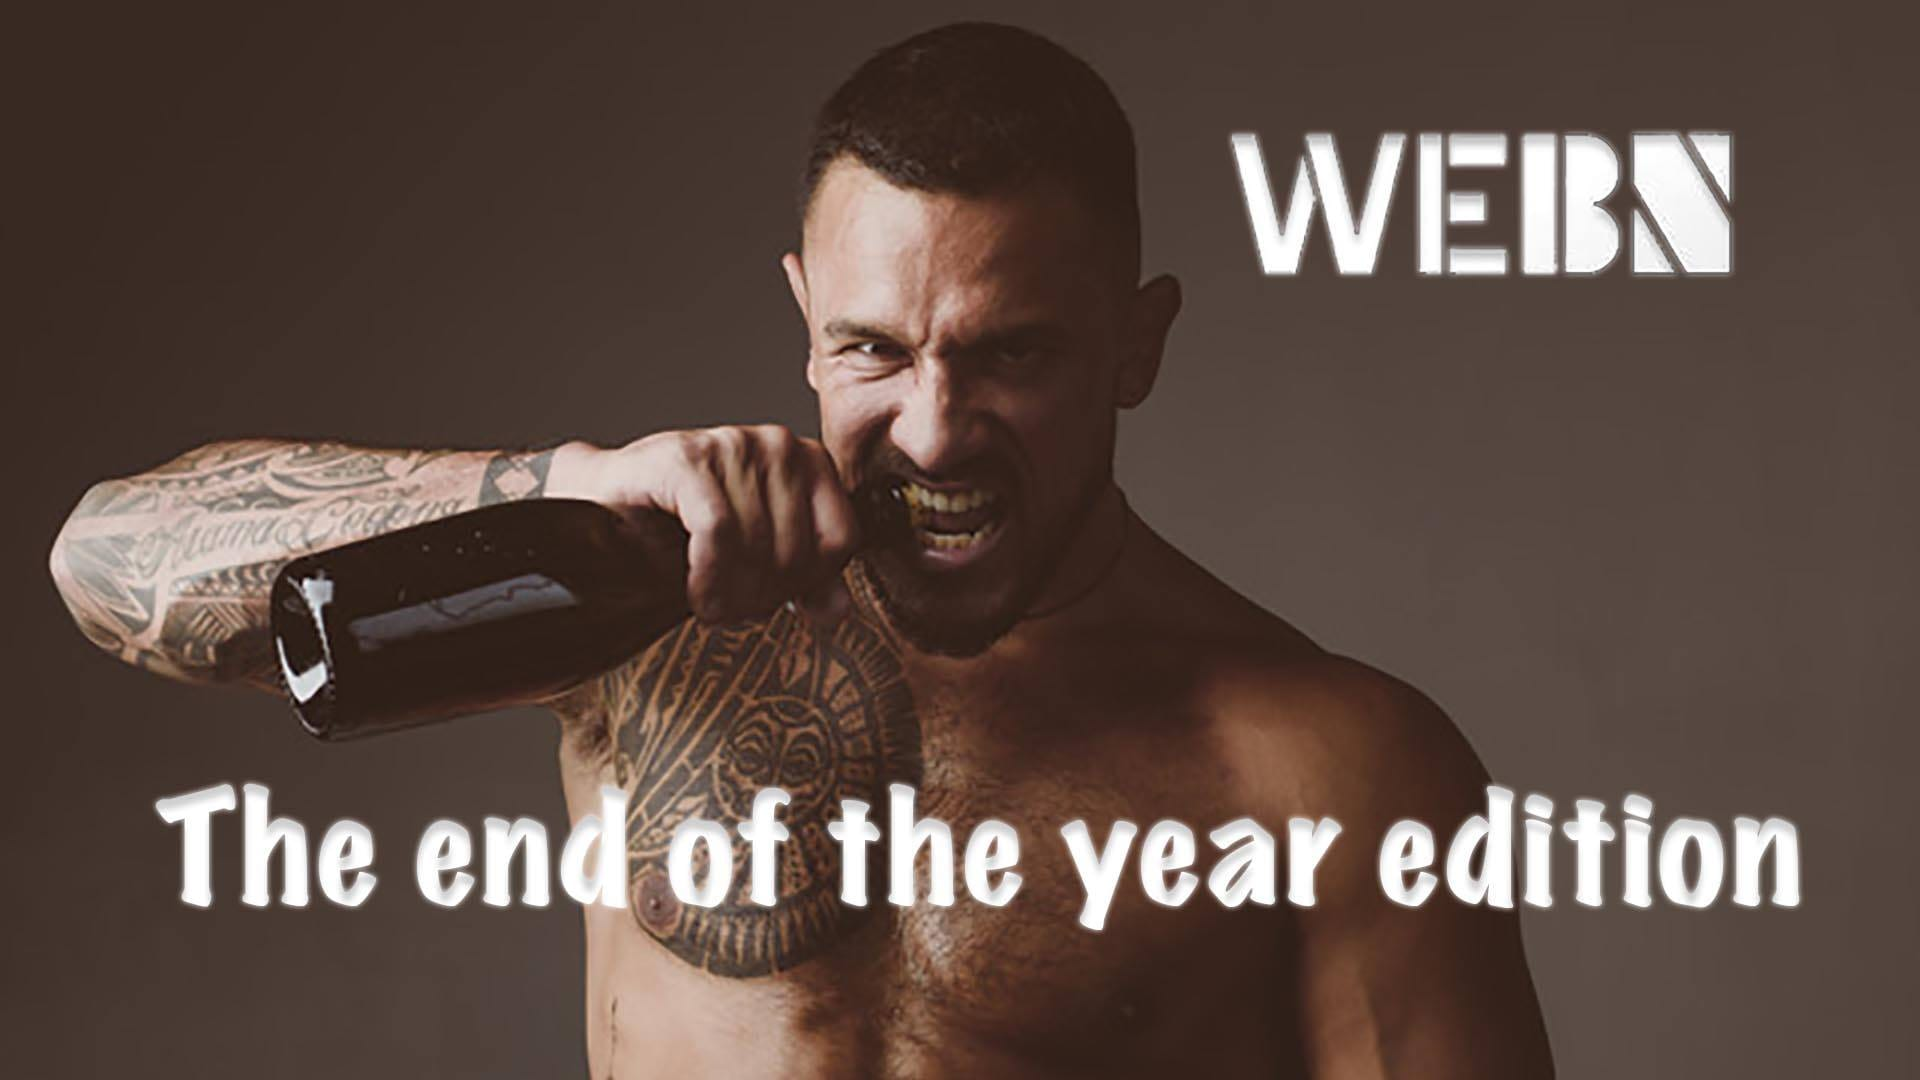 WeBN The end of the year edition